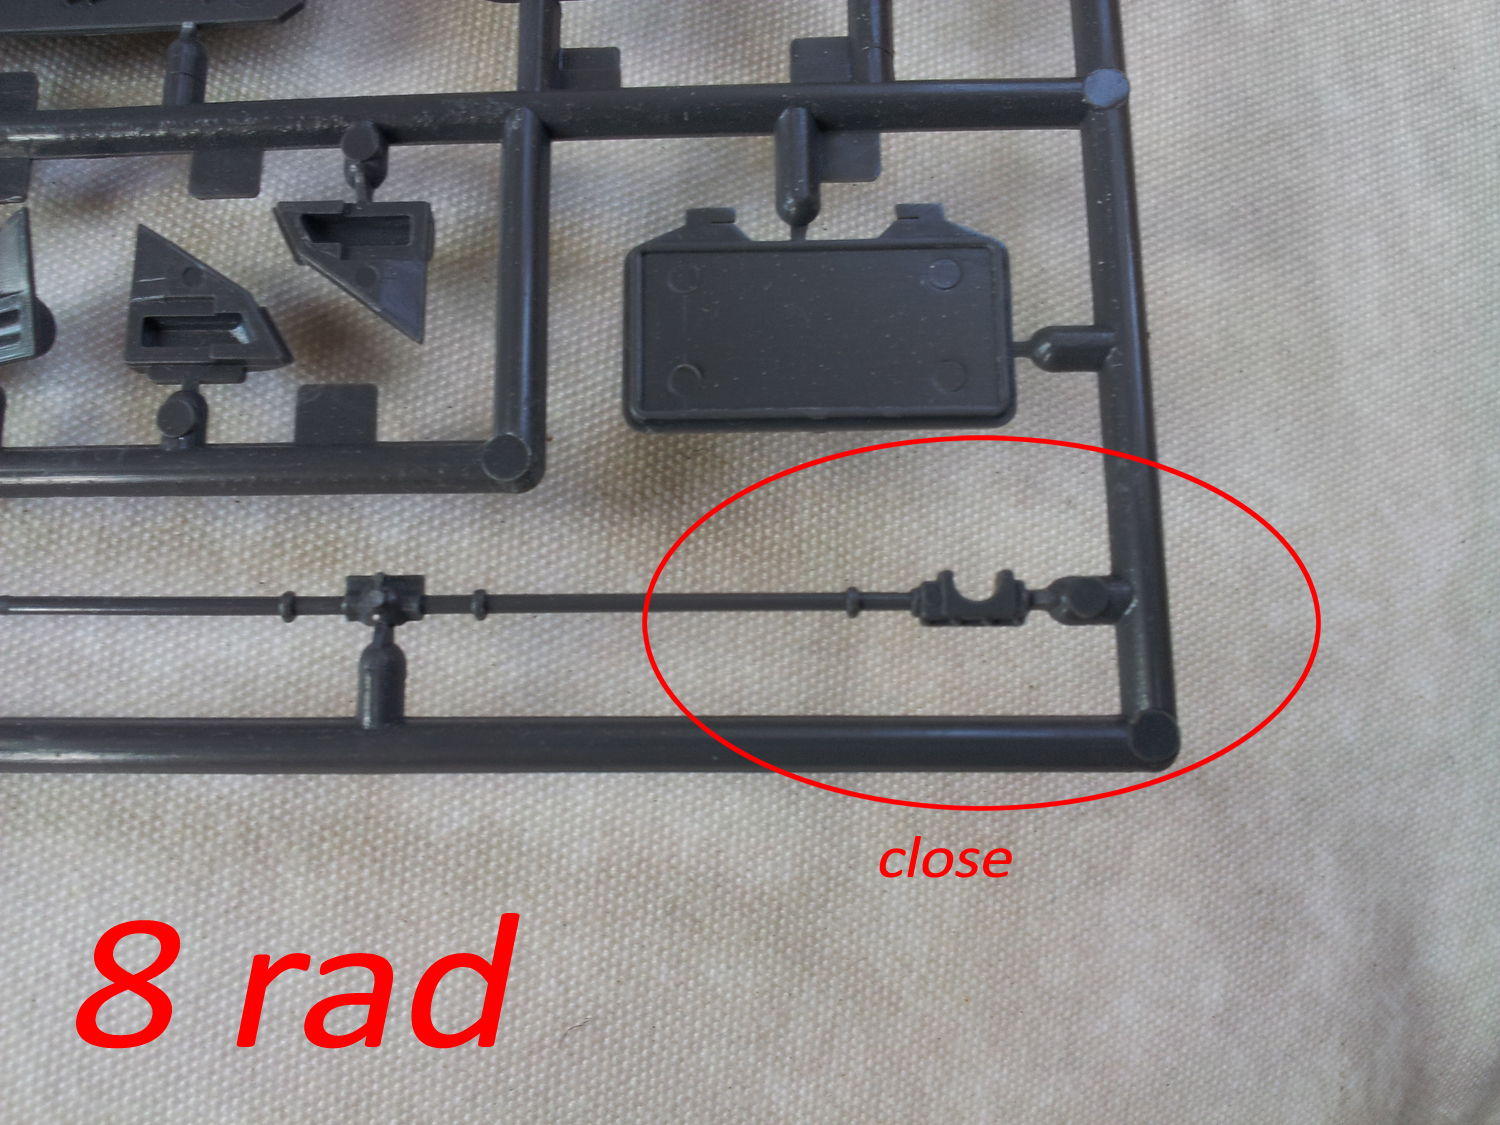 8rad missing part replacement close but not correct.jpg